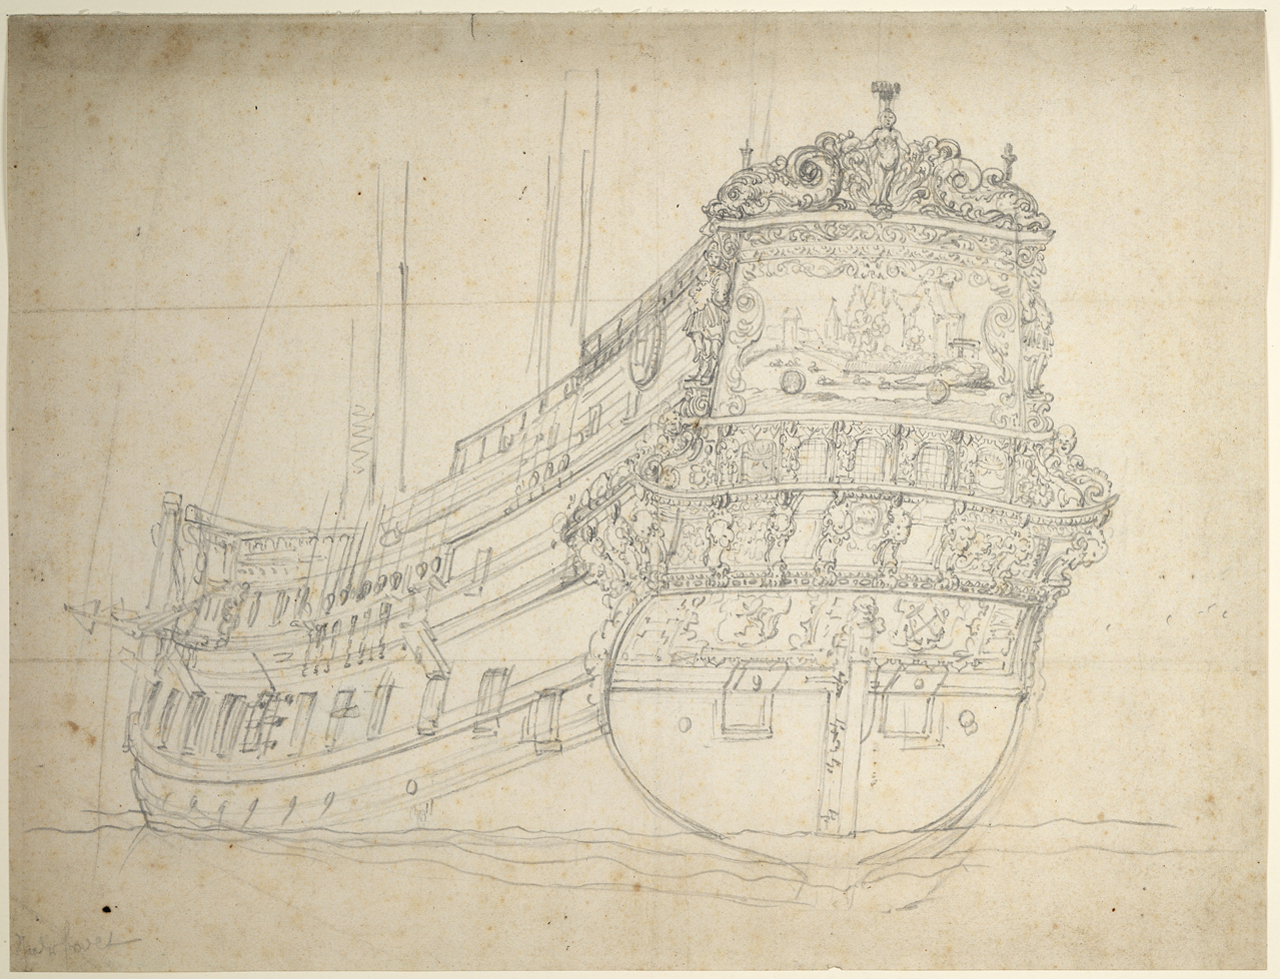 Portrait of the 'Hilversum' is possibly an offset from Portrait of the 'Jaarsveld' (inv. no. PAH3827) both ca. 1655, graphite on paper National Maritime Museum, Greenwich, London The offset was a form of transfer from drawing to drawing commonly used in the Van de Veldes' studio.